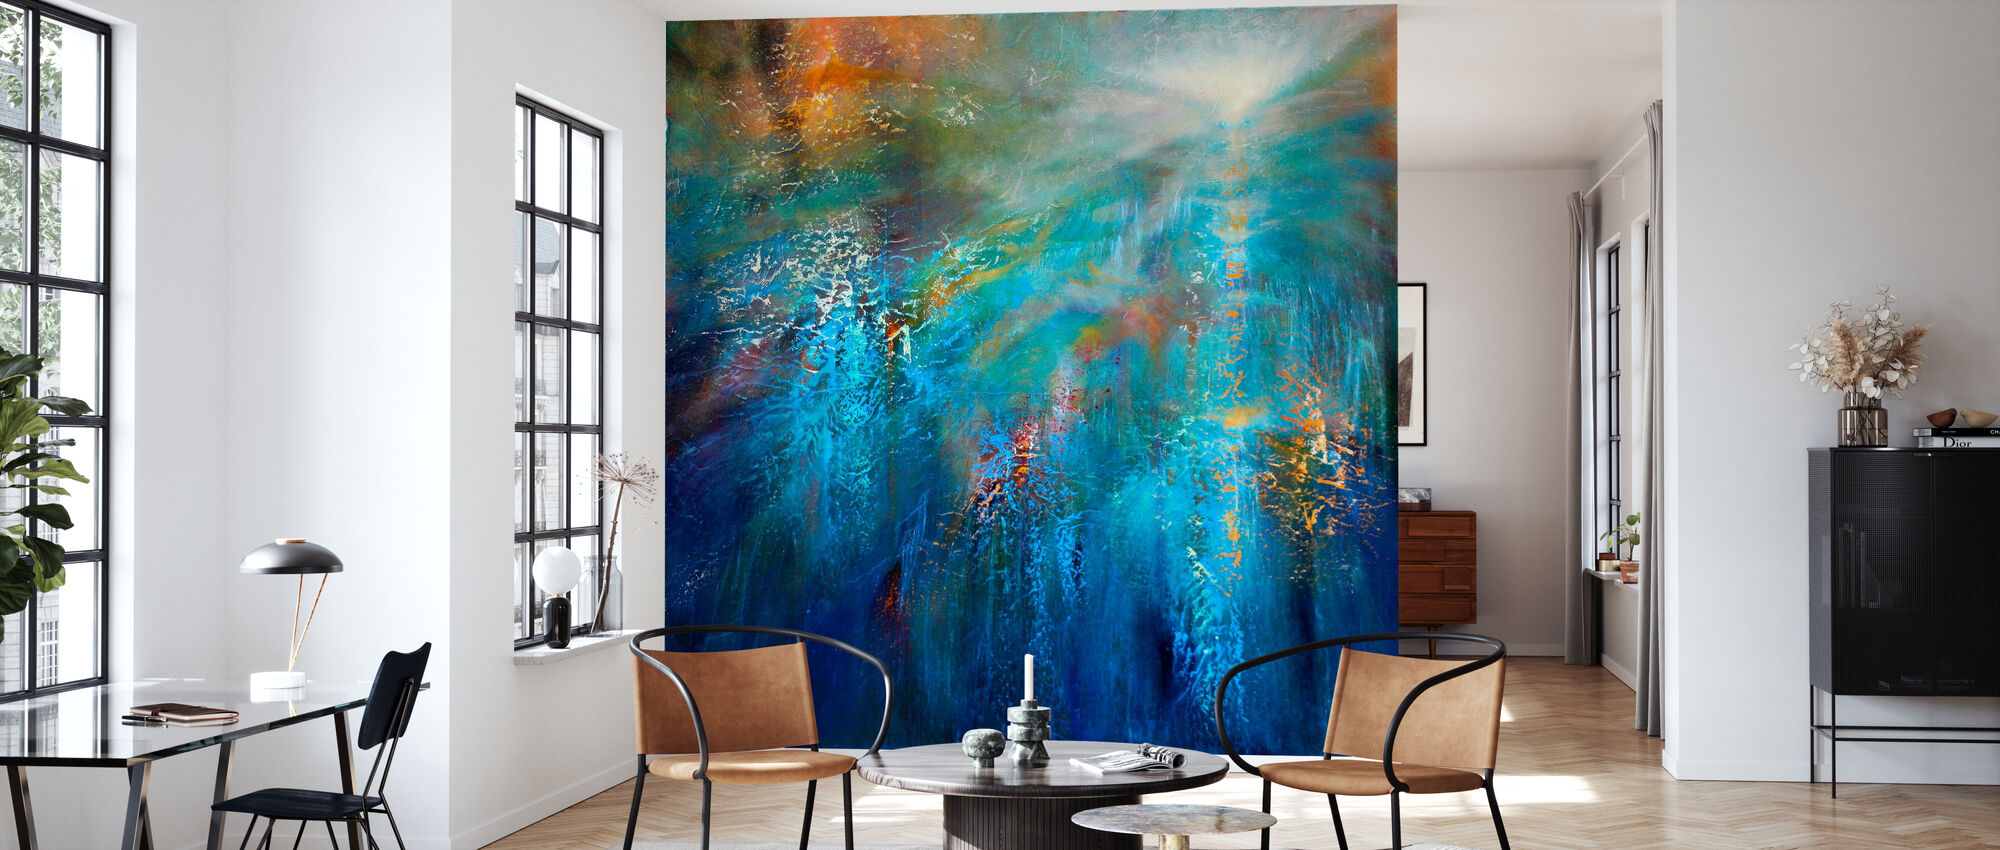 Another Blue Morning - Wallpaper - Living Room